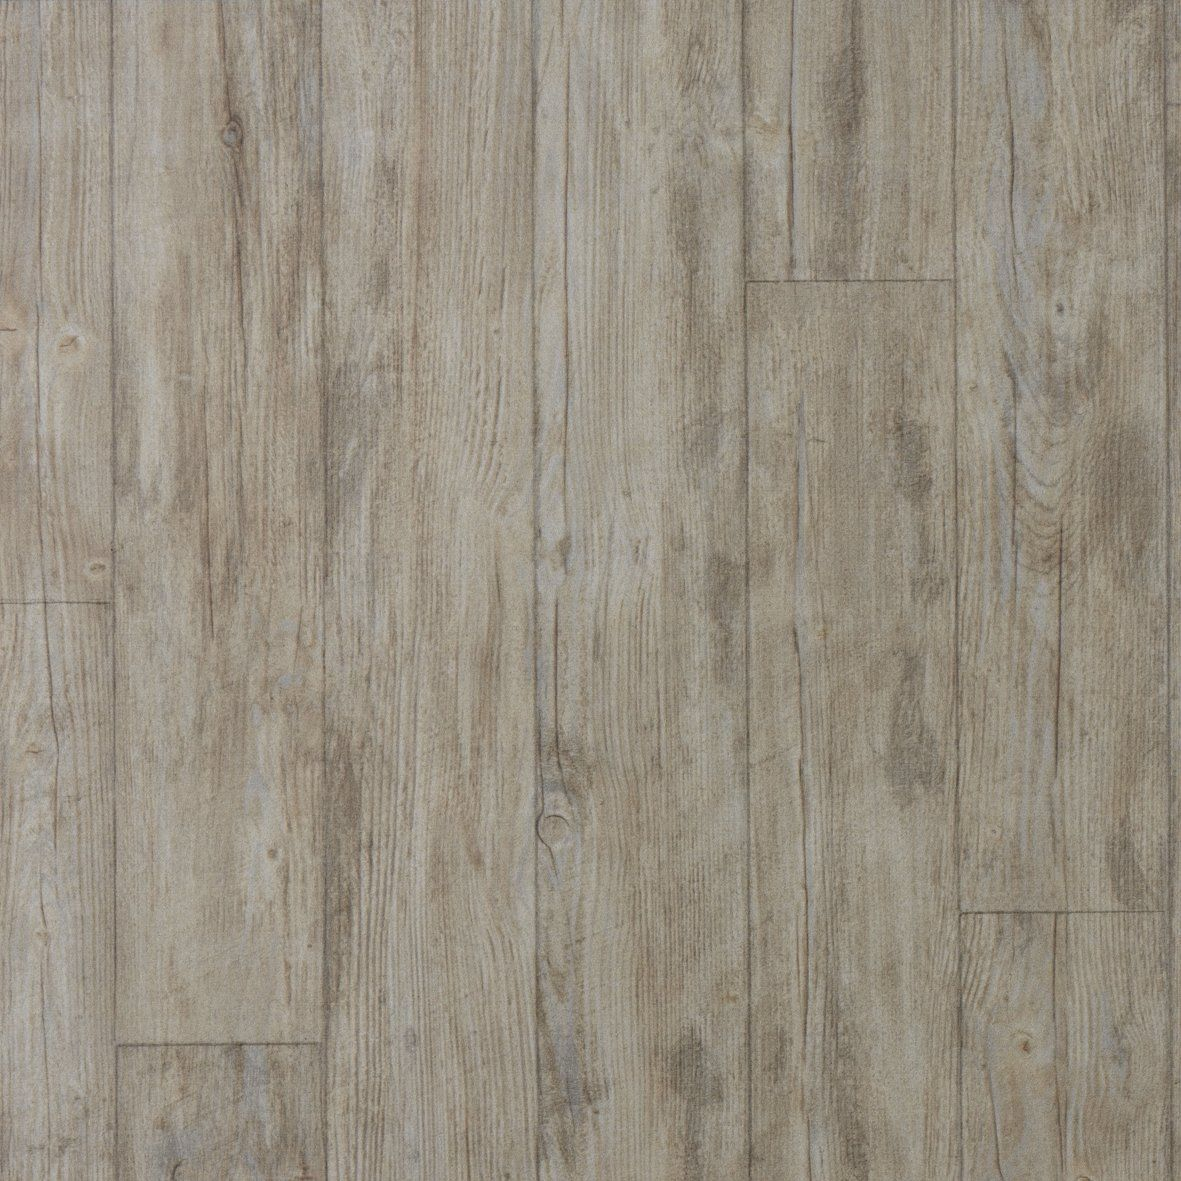 Laminat textur hd  European White Oak Wood HD | Quality Flotex - buy online, or visit ...